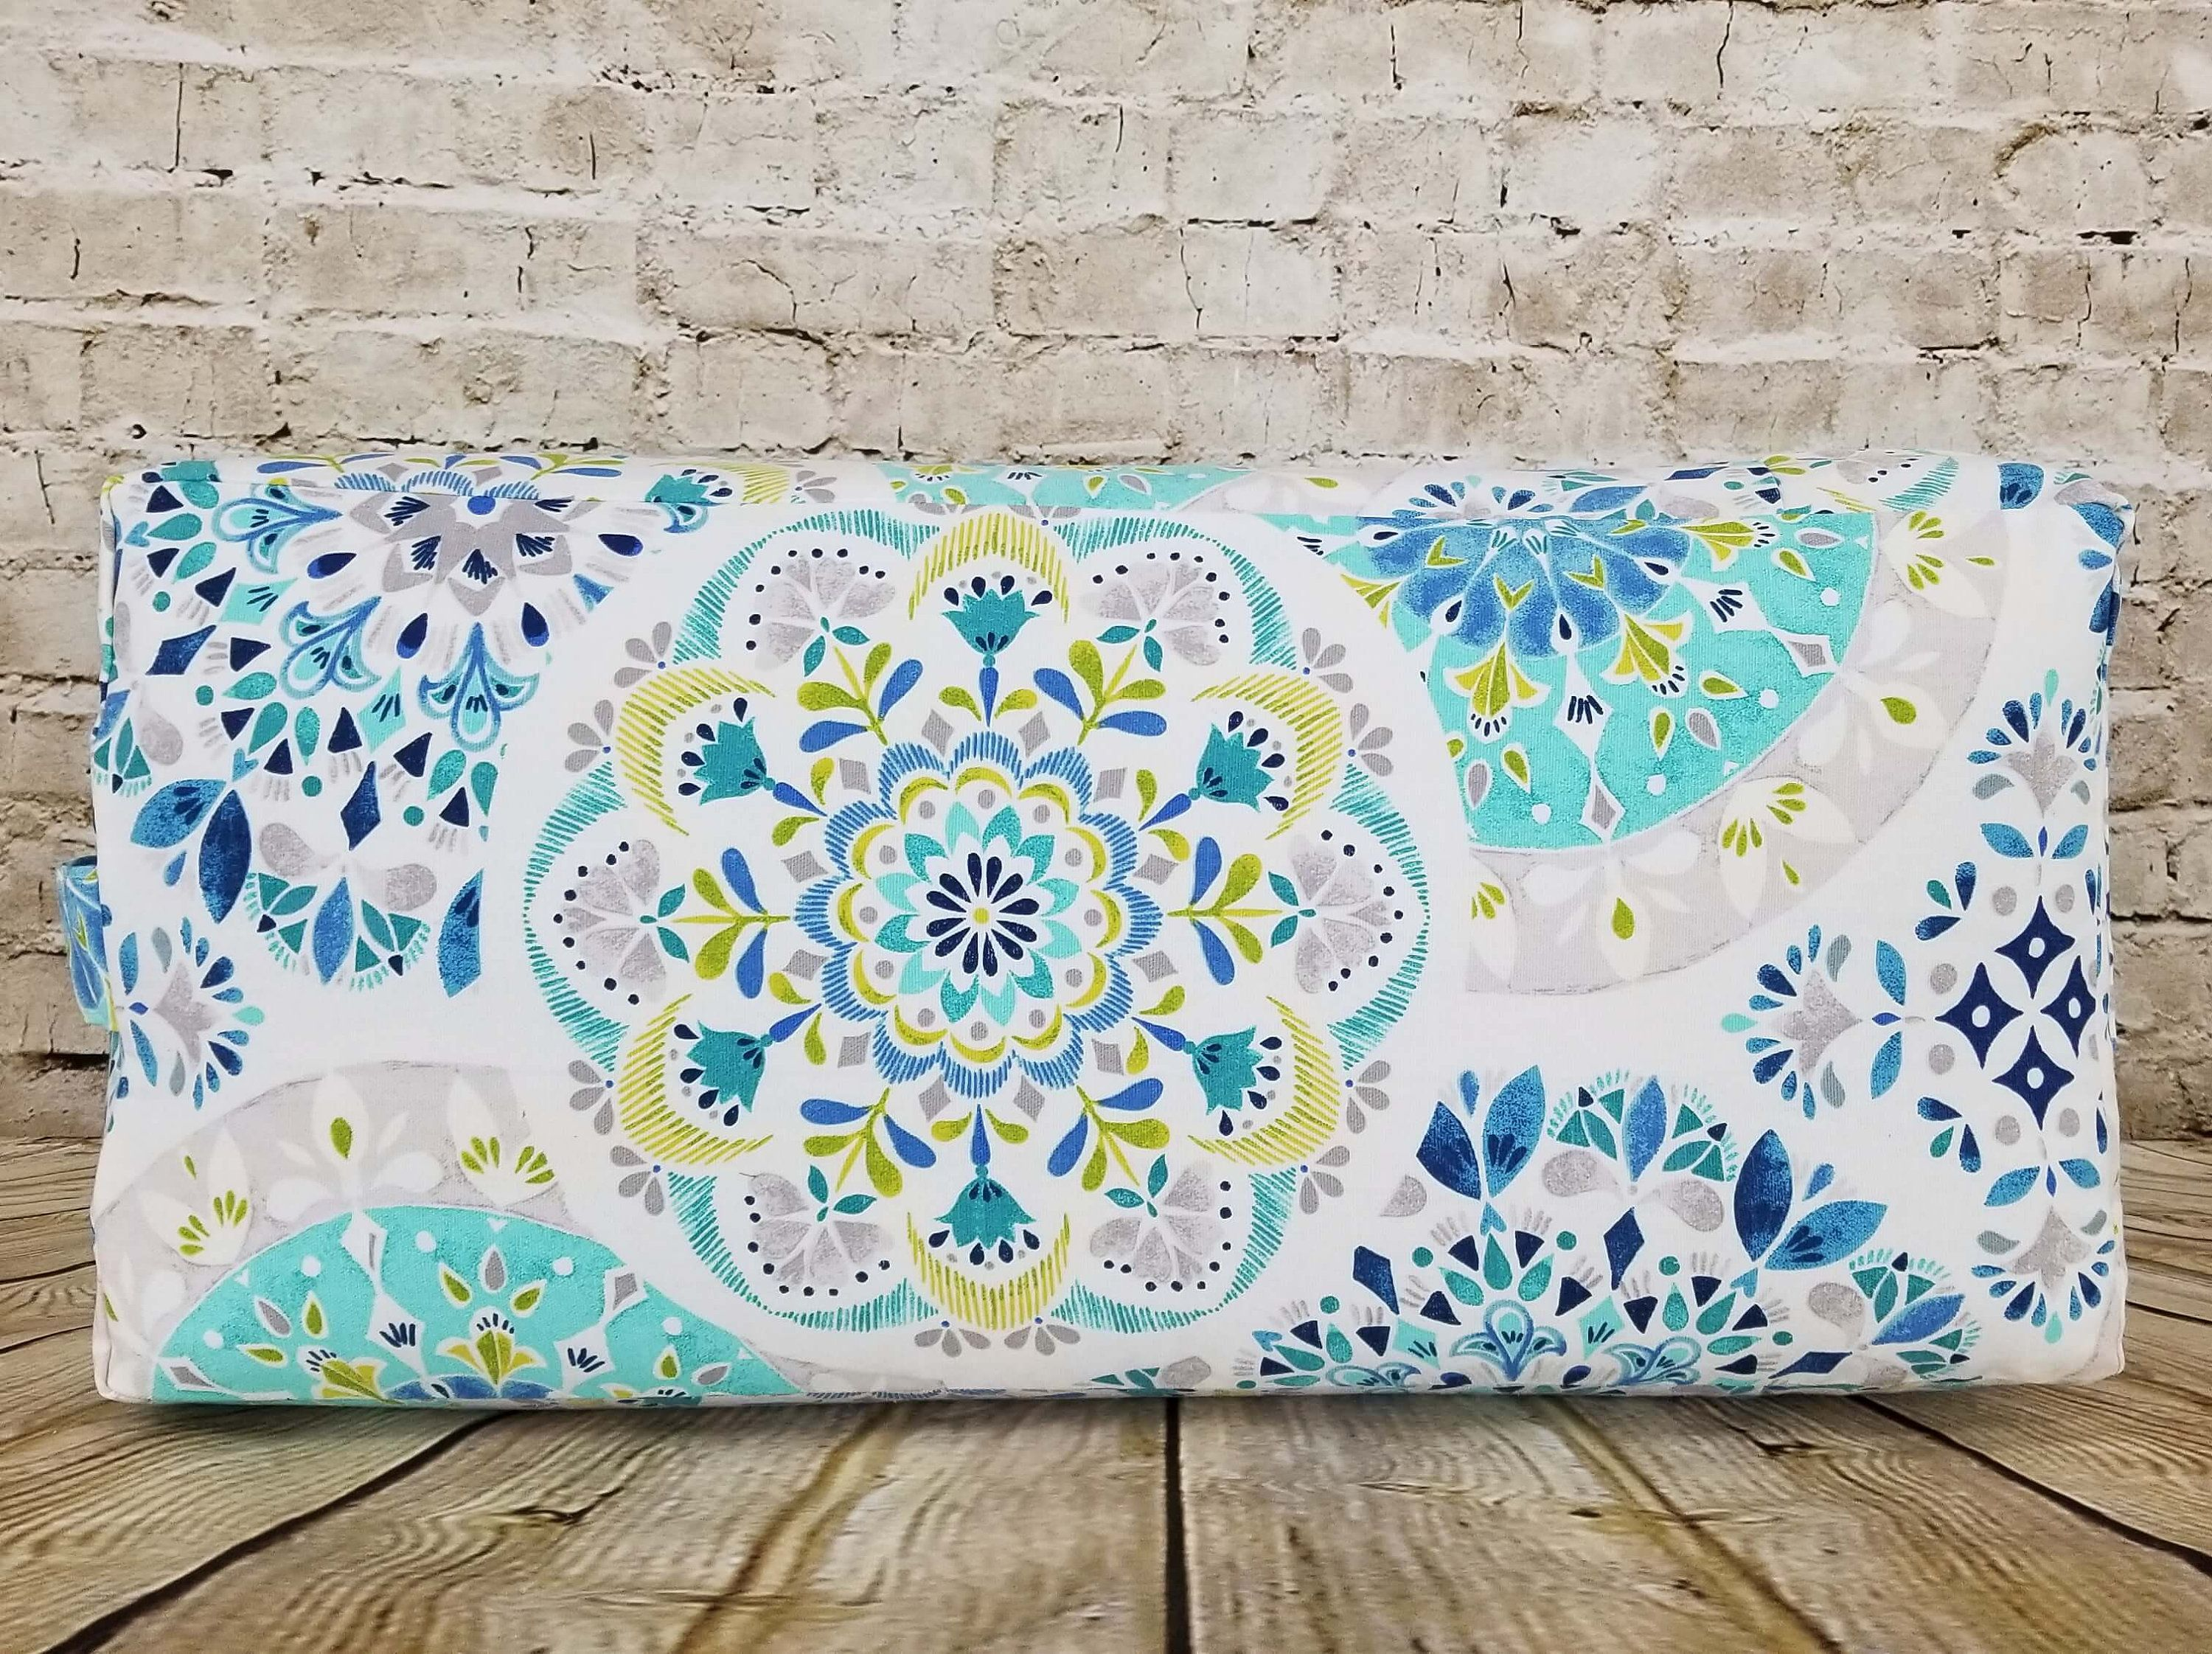 blanket bolster accessories mexican traditional yoga zoom pillow